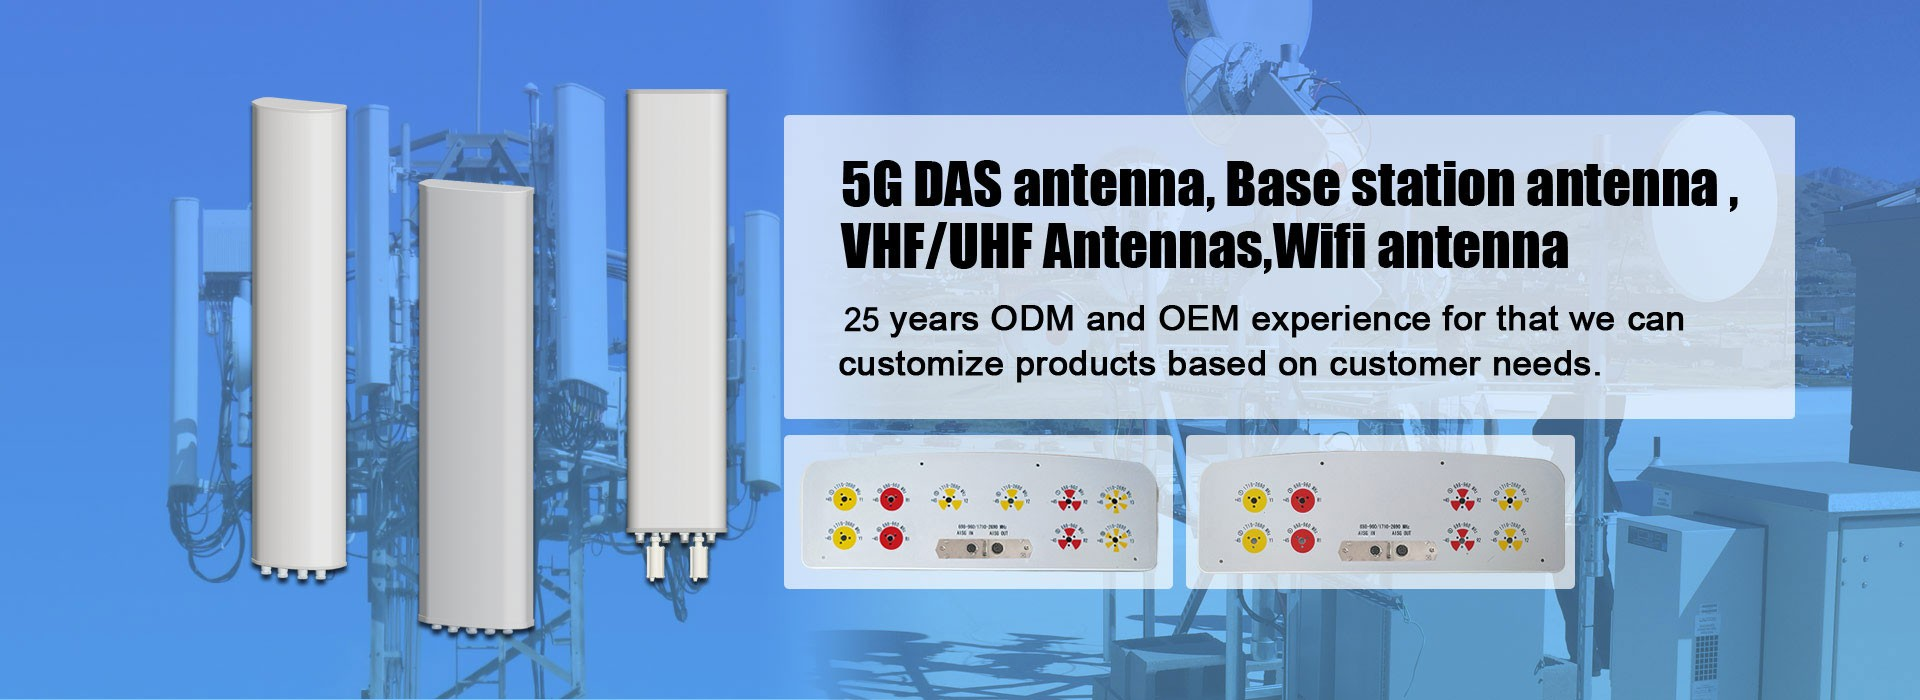 base stations antennas